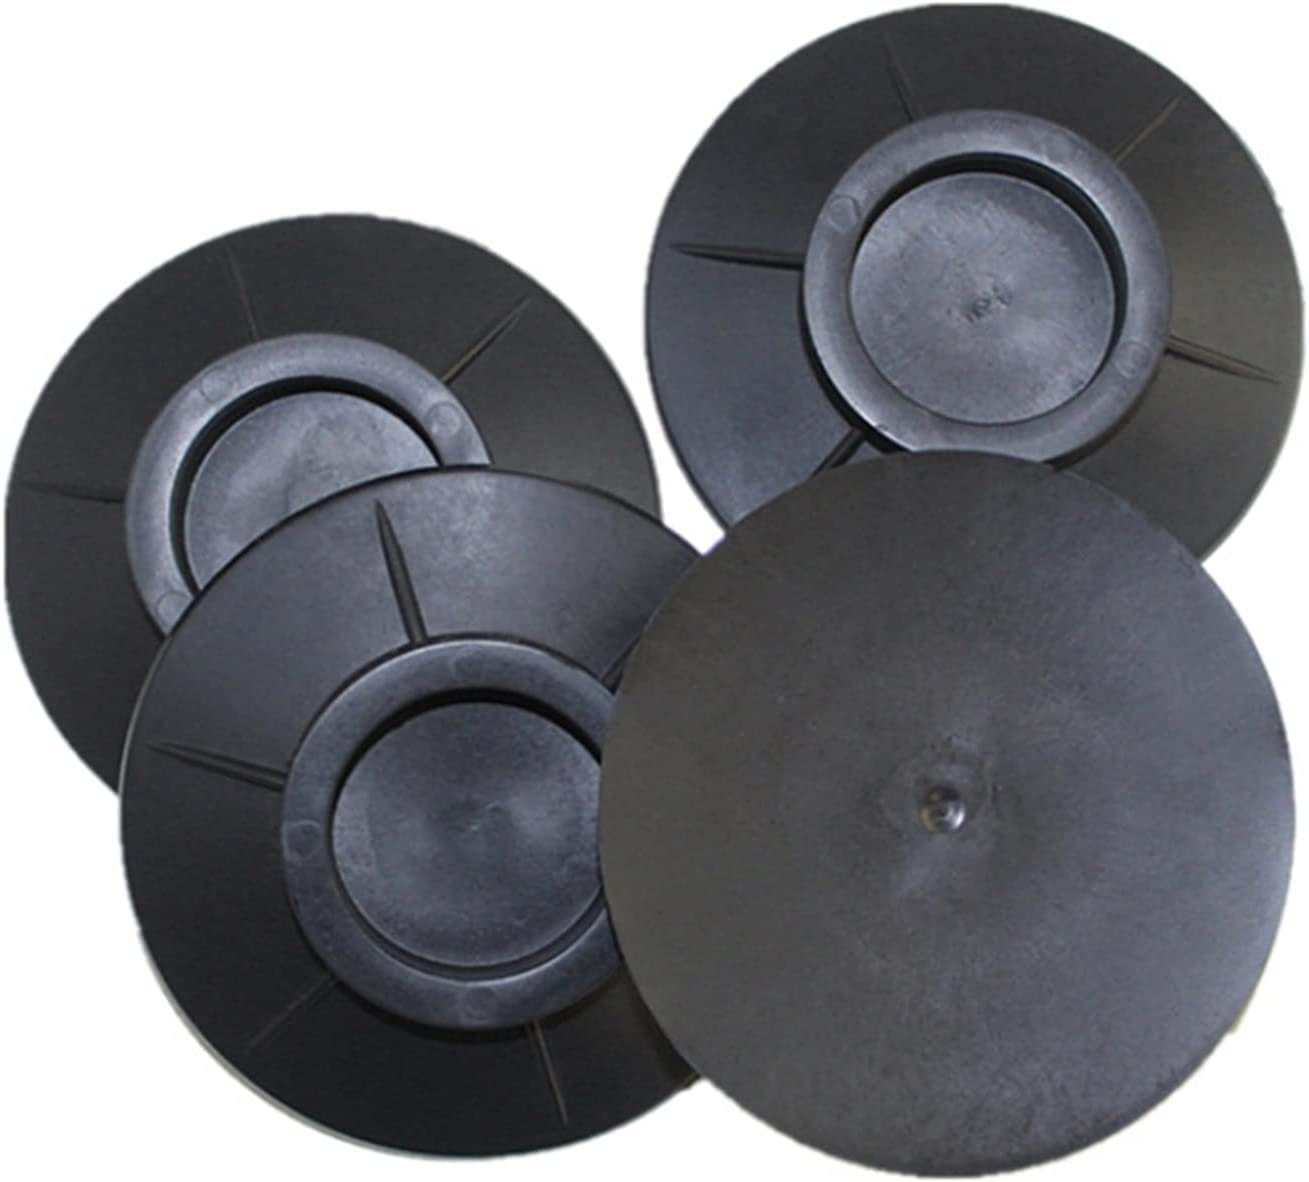 HSLFZD Furniture Cup Factory Ranking TOP2 outlet 4pcs Rubber Mat Absorption Non- Floor Shock